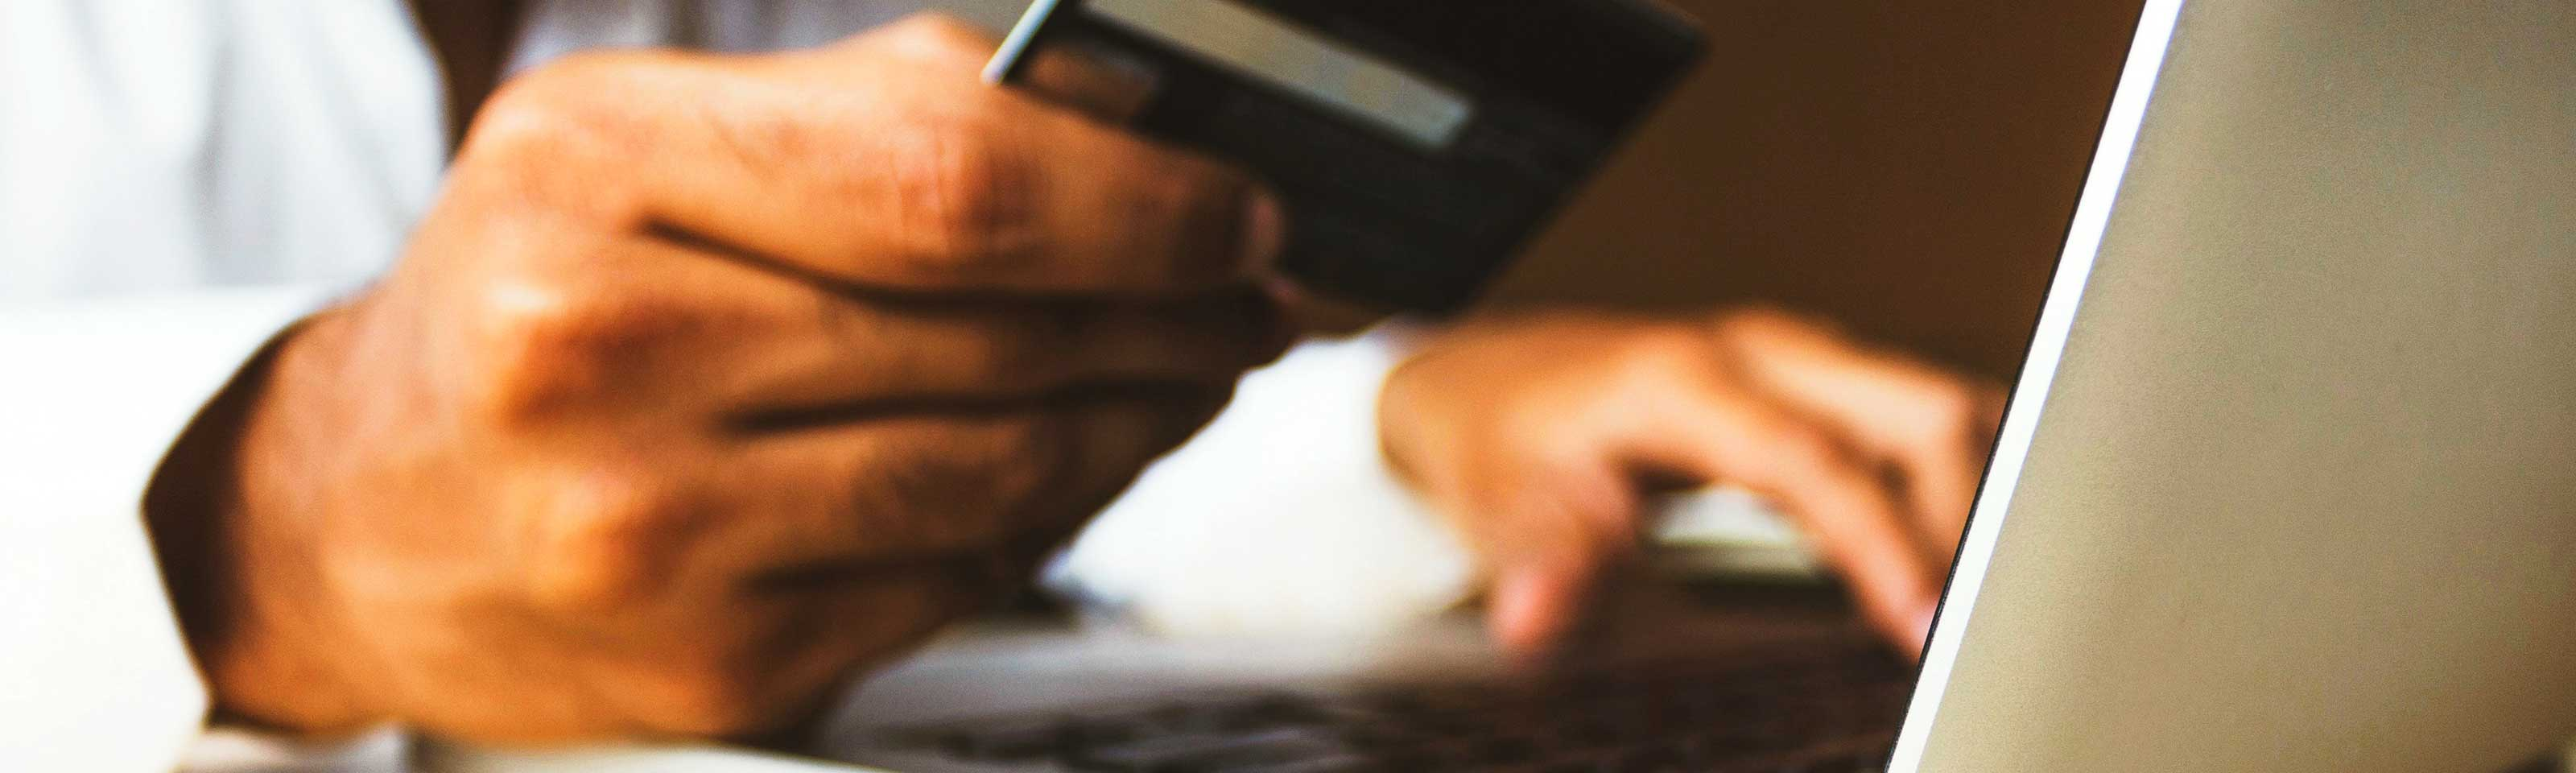 Businessman using a payment card to make a payment on a laptop computer.